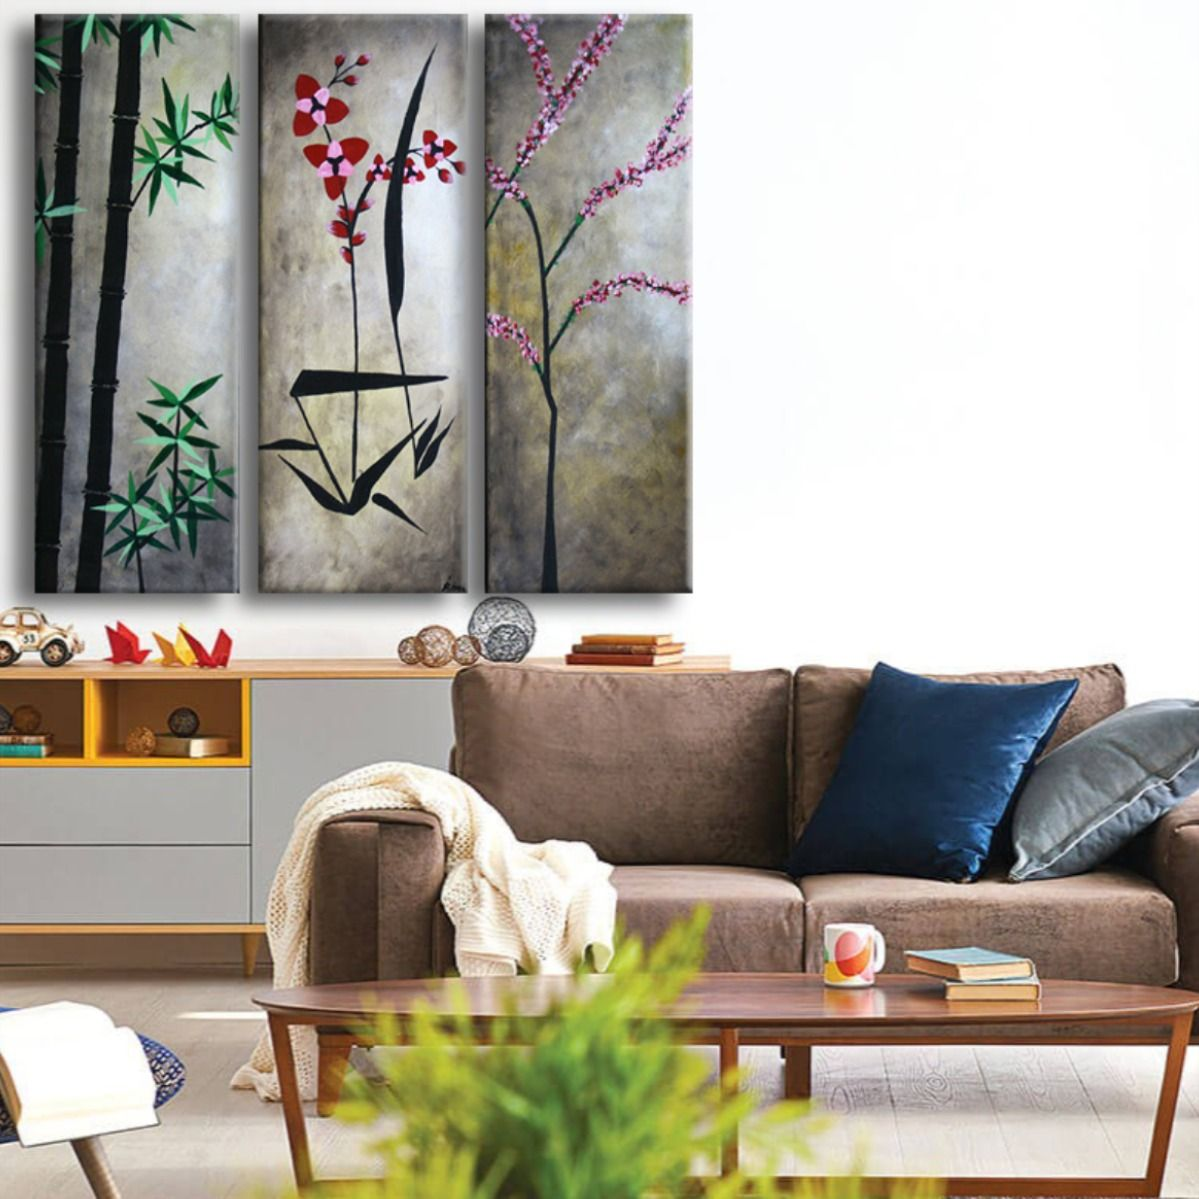 Abstract Asian Flowers Triptych Painting Original 3 Canvas Floral Acrylic On Canvas Home Wall Artwork Ready To Hang Made To Order Asian In 2020 Asian Flowers Wall Artwork Canvas Home